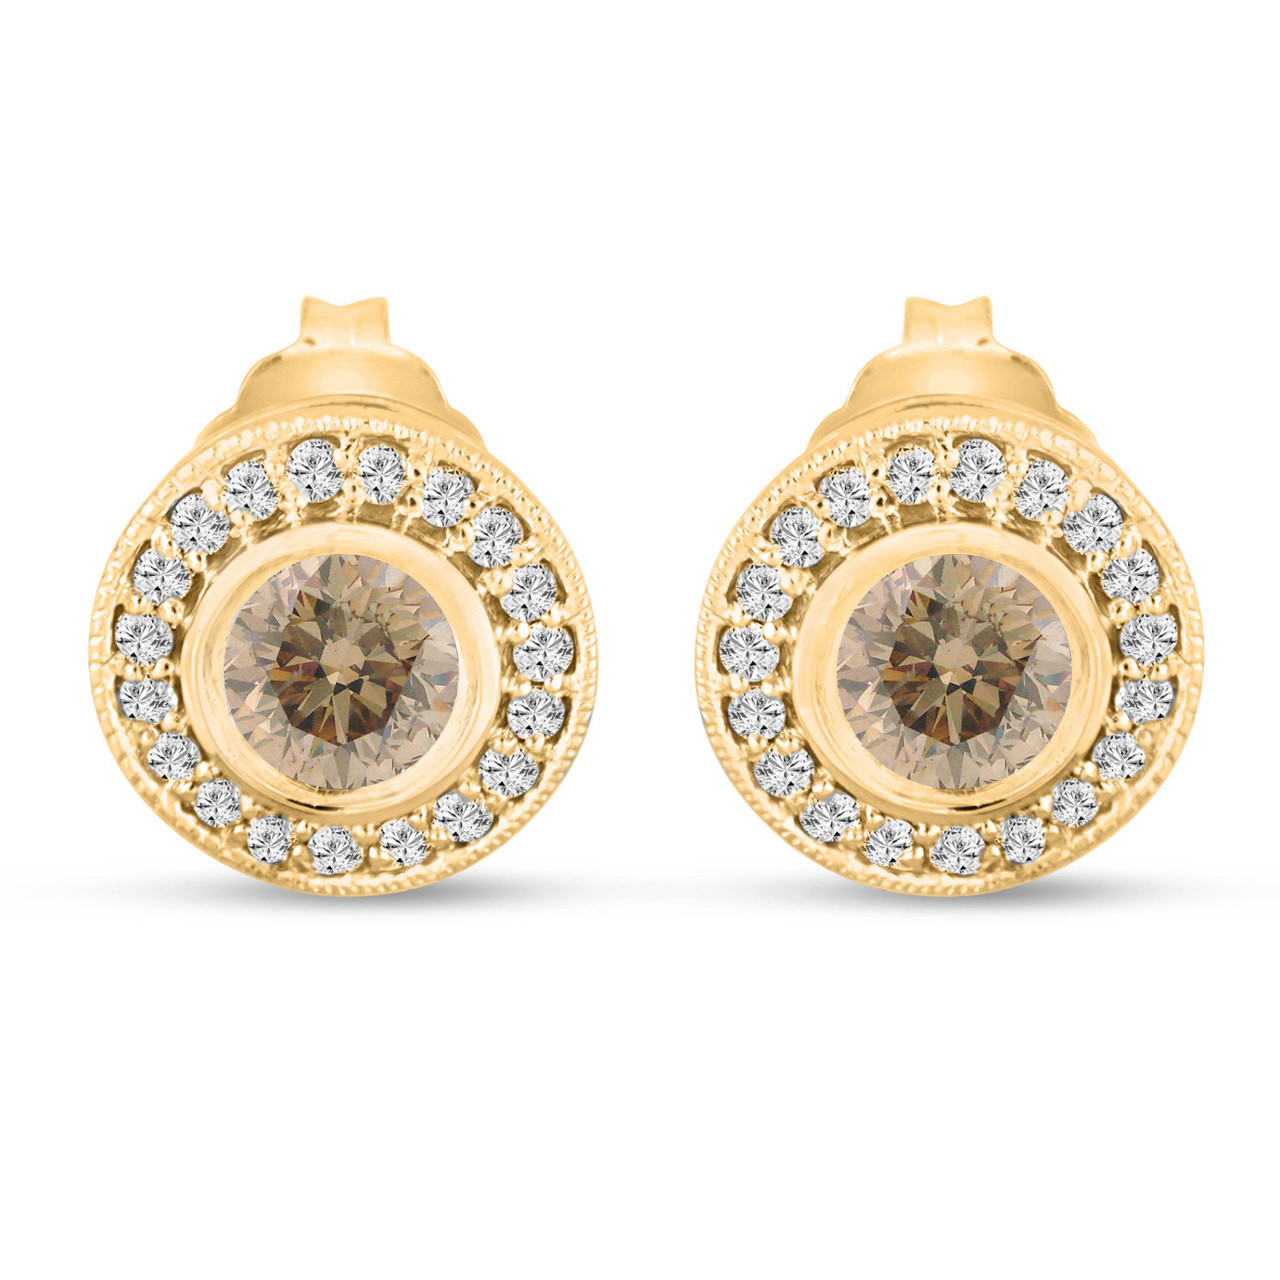 e solitaire item click expand stud full gold earrings diamond champagne natural to